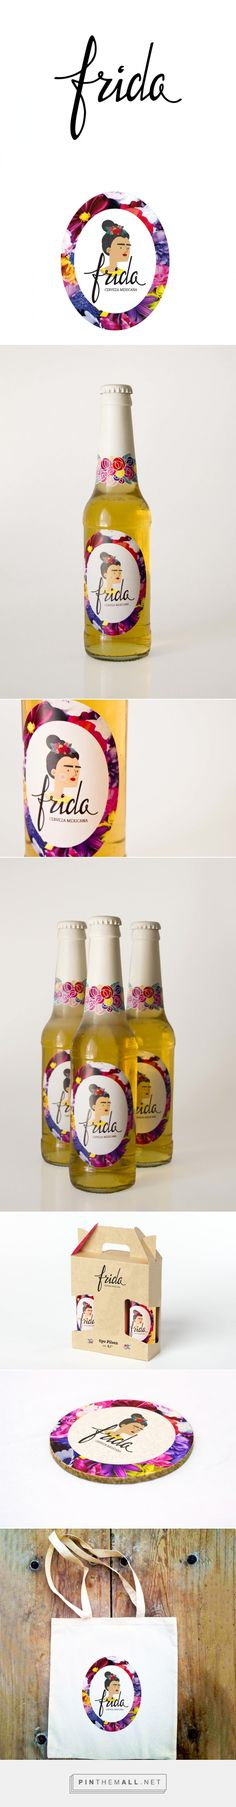 Frida, Cerveza Mexicana (con Elia Moliner) via Domestika curated by Packaging Diva PD